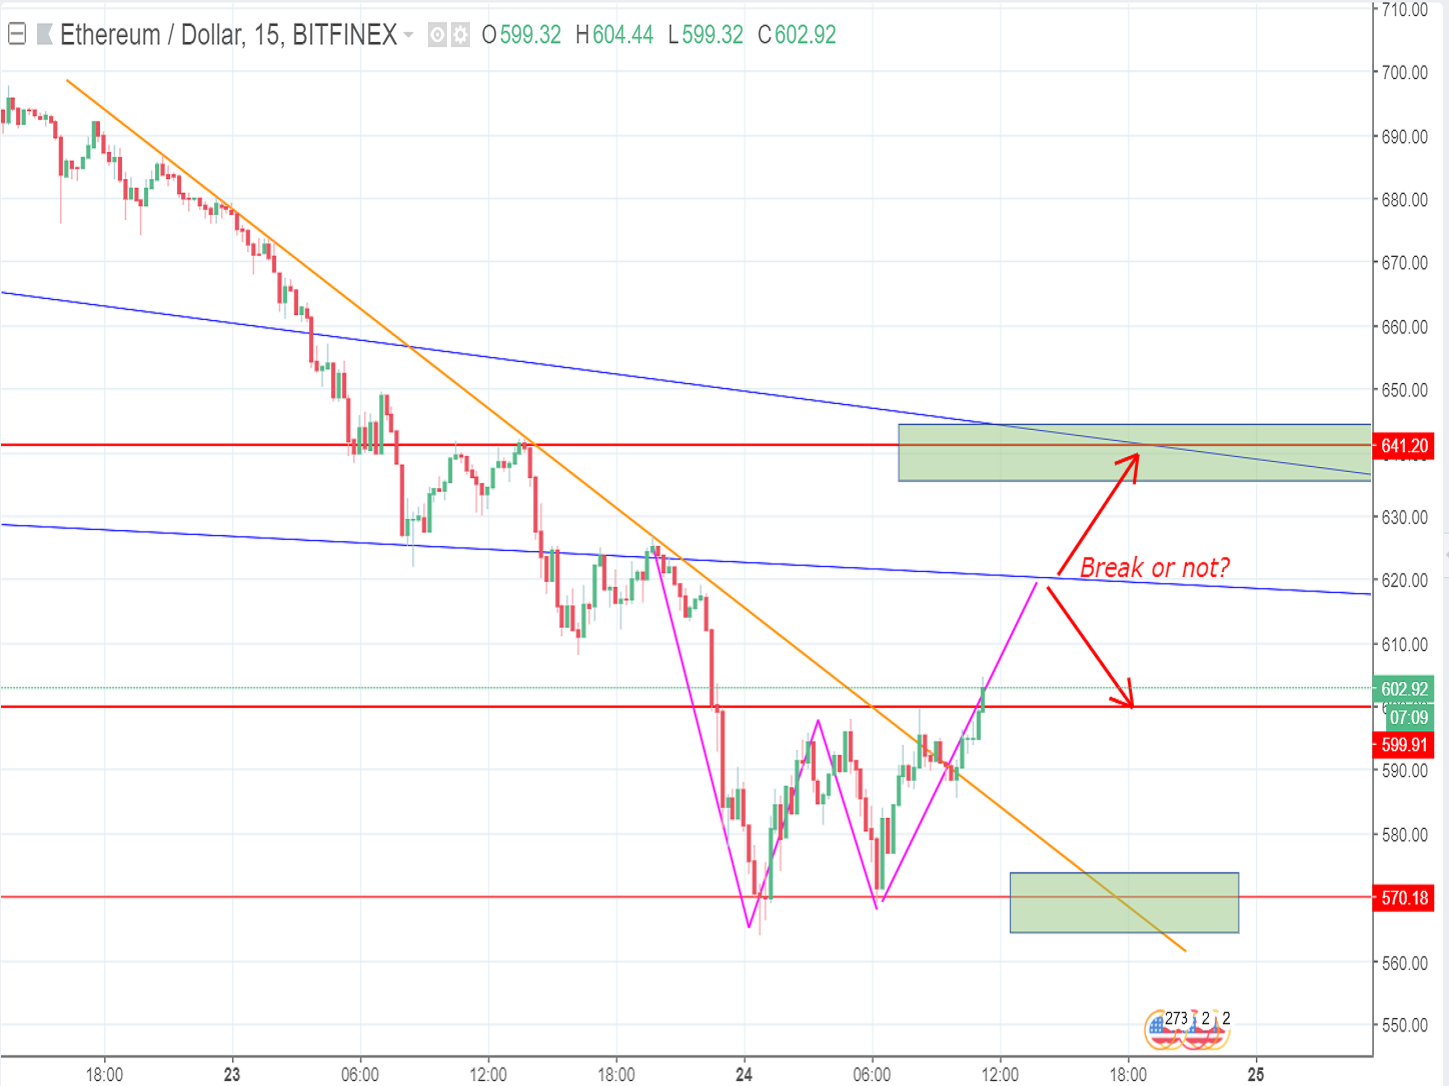 Bitcoin and ETH price will soon recover after a strong downtrend (May 24th)